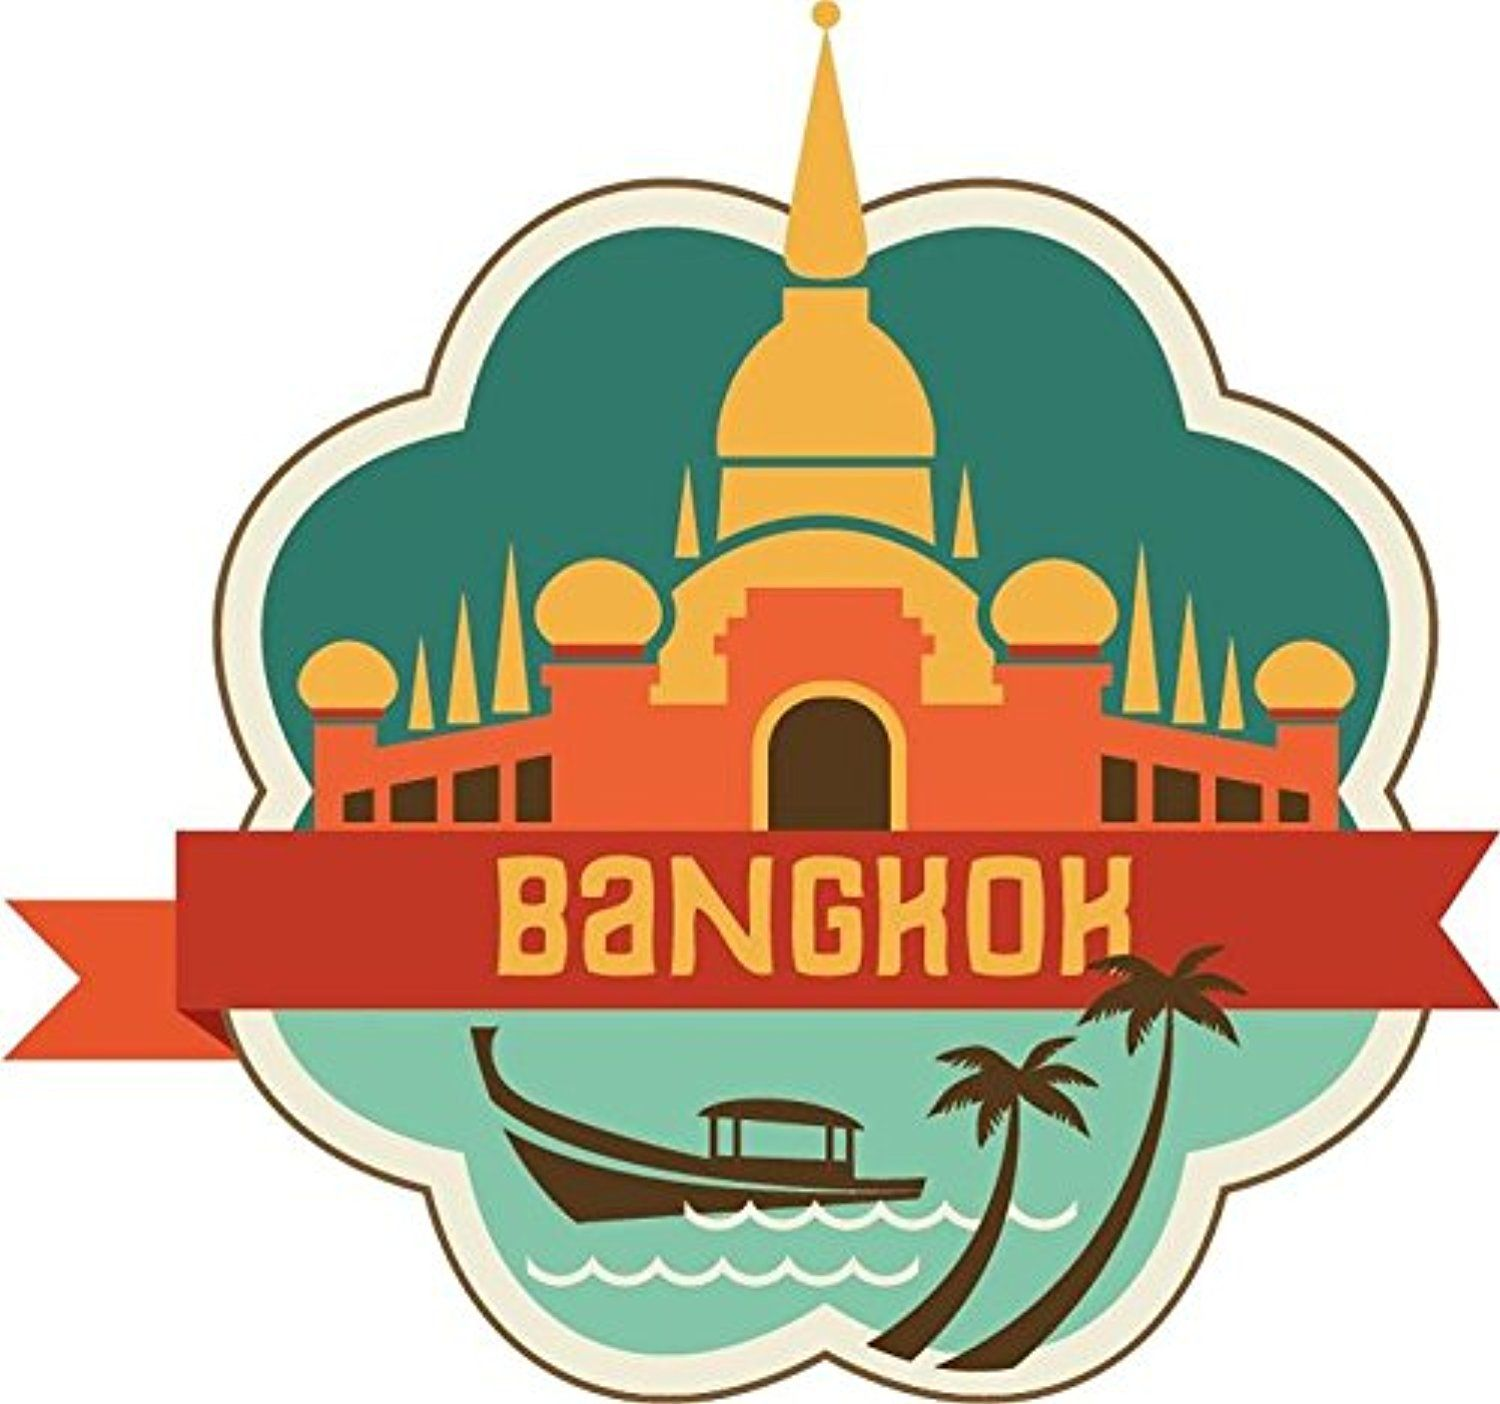 Bangkok thailand world city travel label badge sticker decal design 5 x 5 awesome products selected by anna churchill